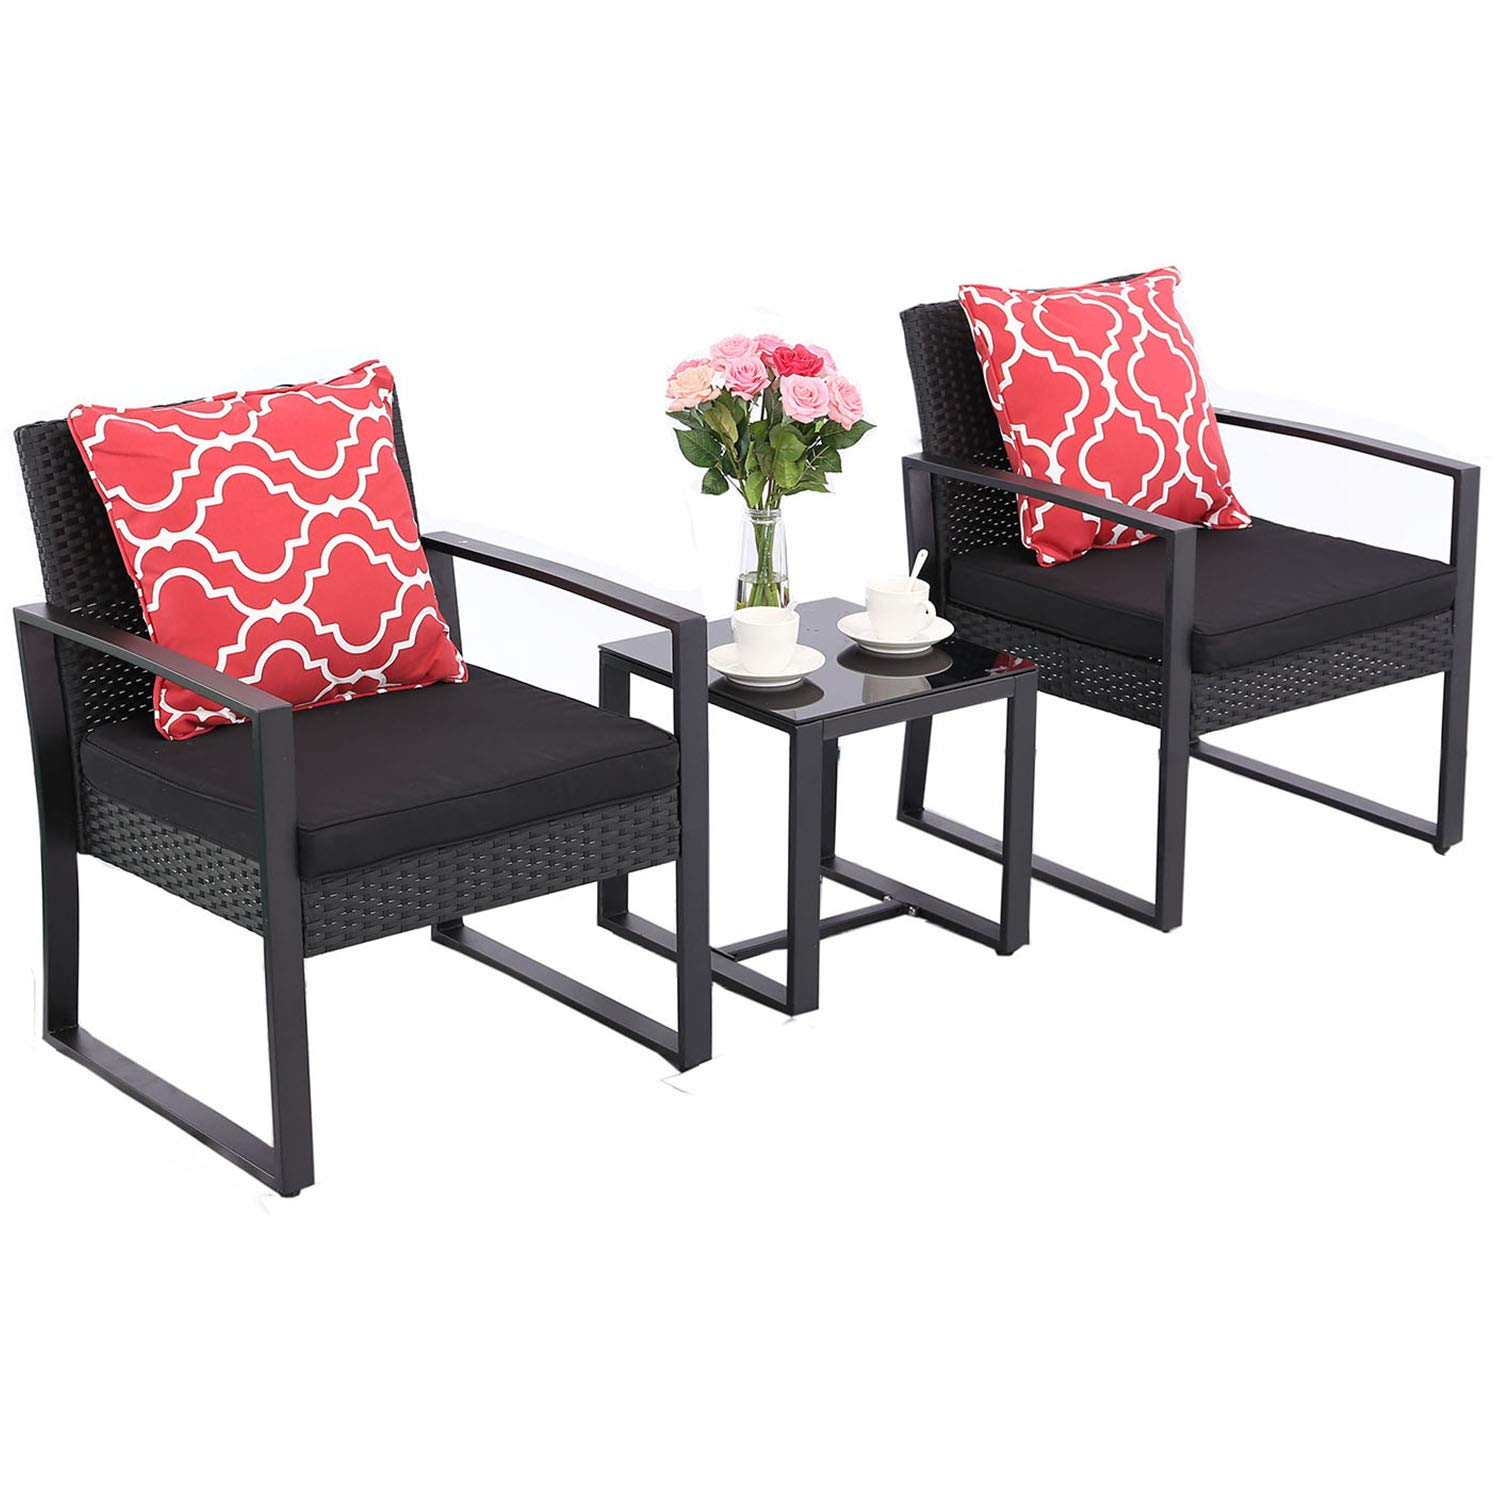 Awesome Details About Htth 3 Pieces Outdoor Chair Sets Two Chairs Rattan With Glass Coffee Table Andrewgaddart Wooden Chair Designs For Living Room Andrewgaddartcom